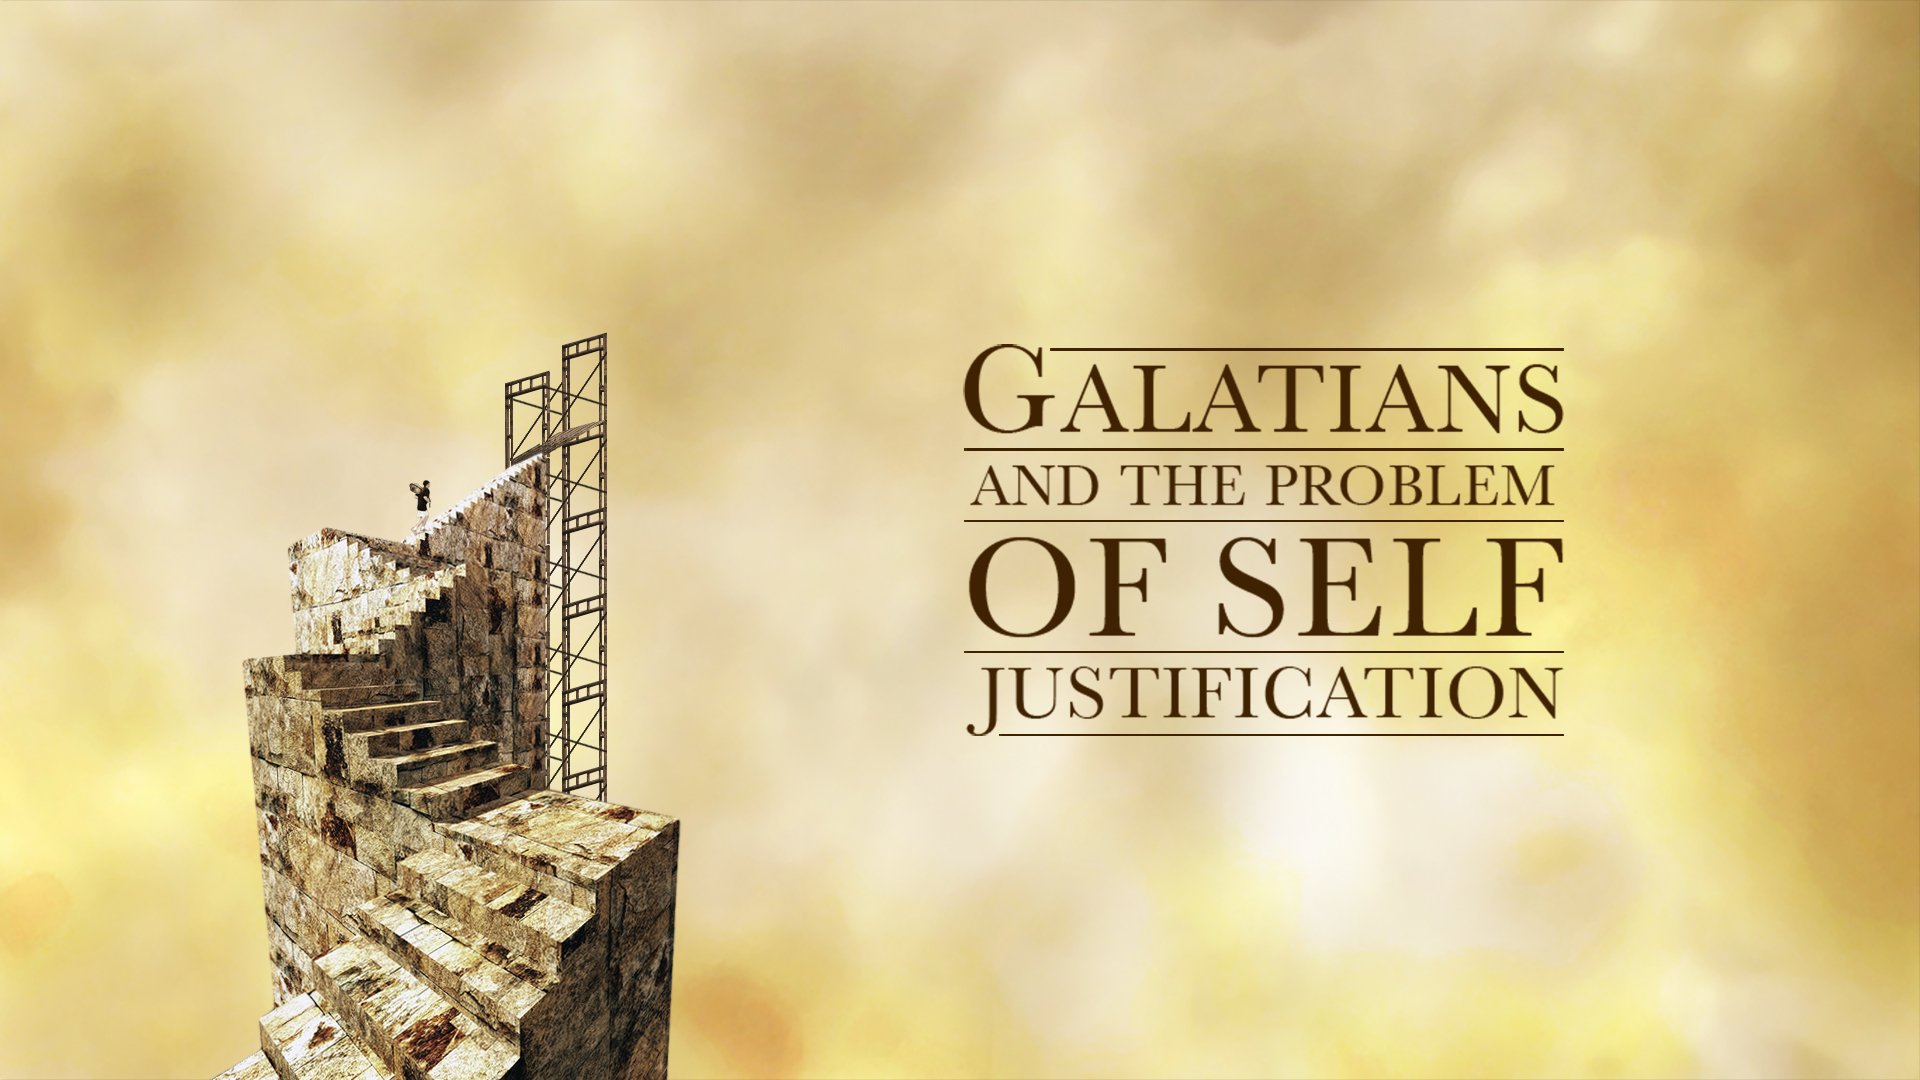 Clarus 08 – Galatians and the Problem of Self Justification